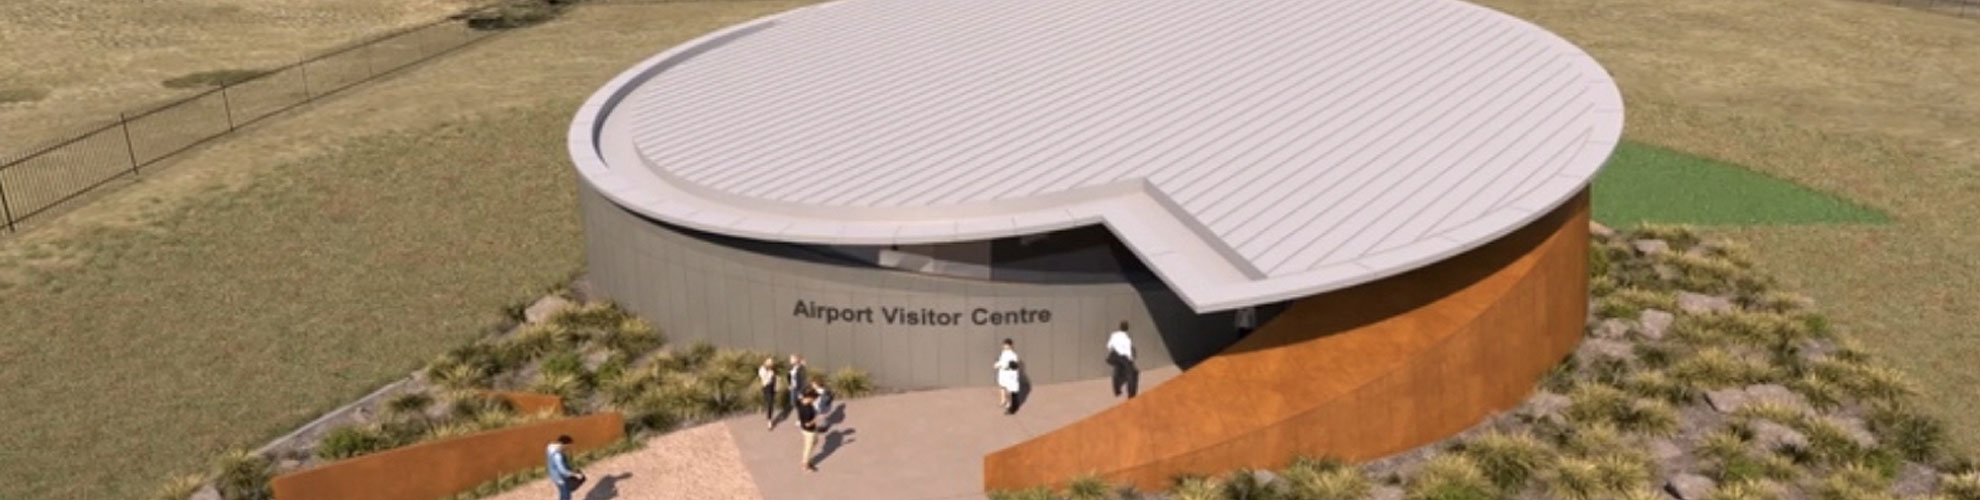 Concept rendering image of the proposed Airport Visitors Centre.